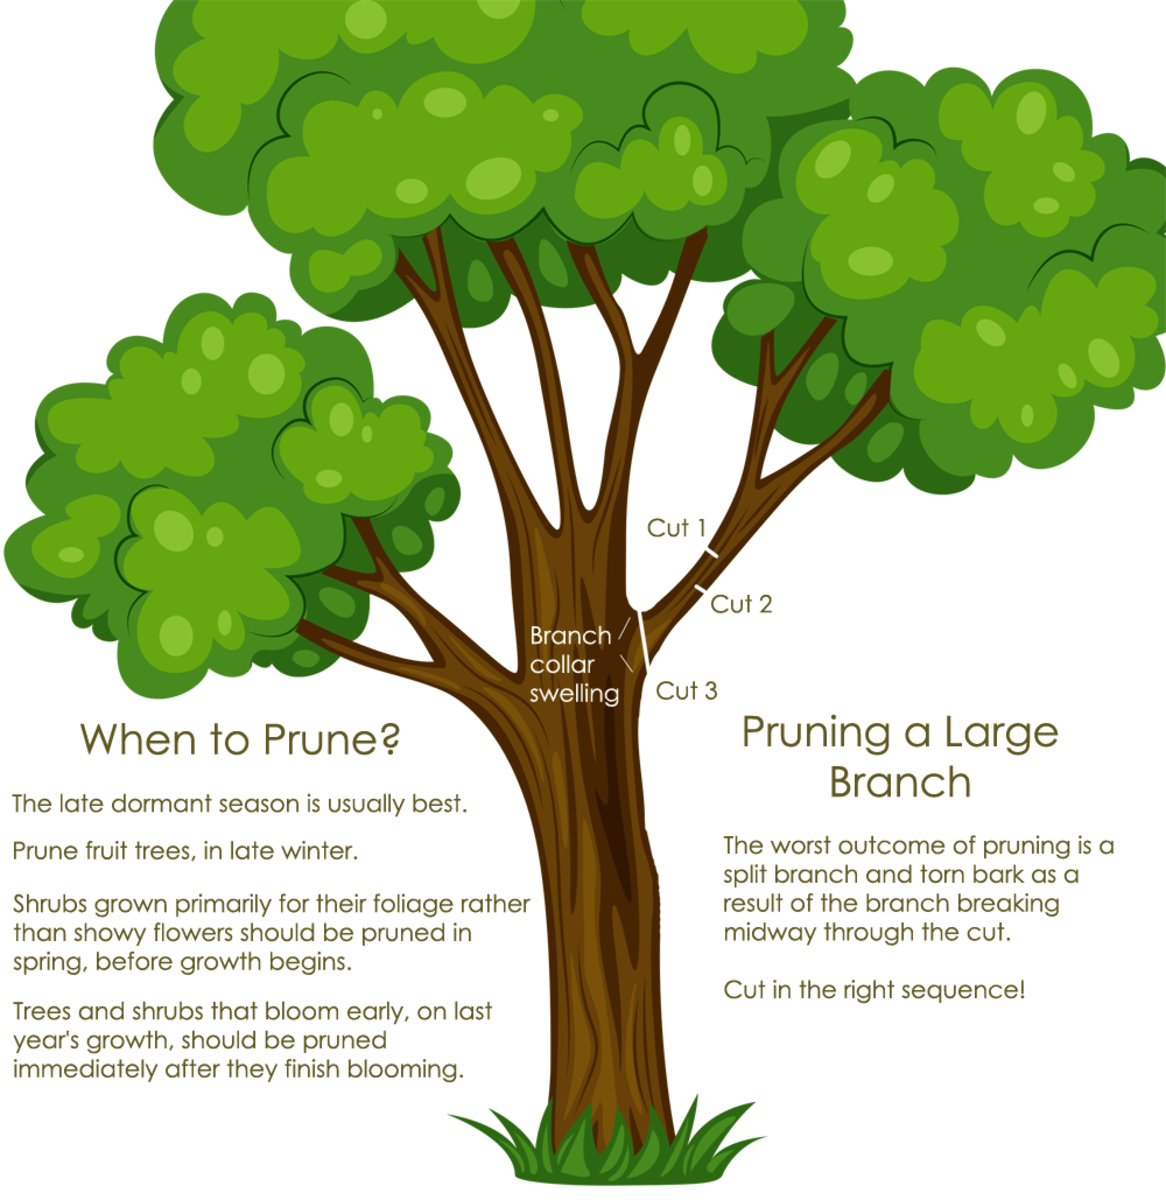 Pruning advice graphic.